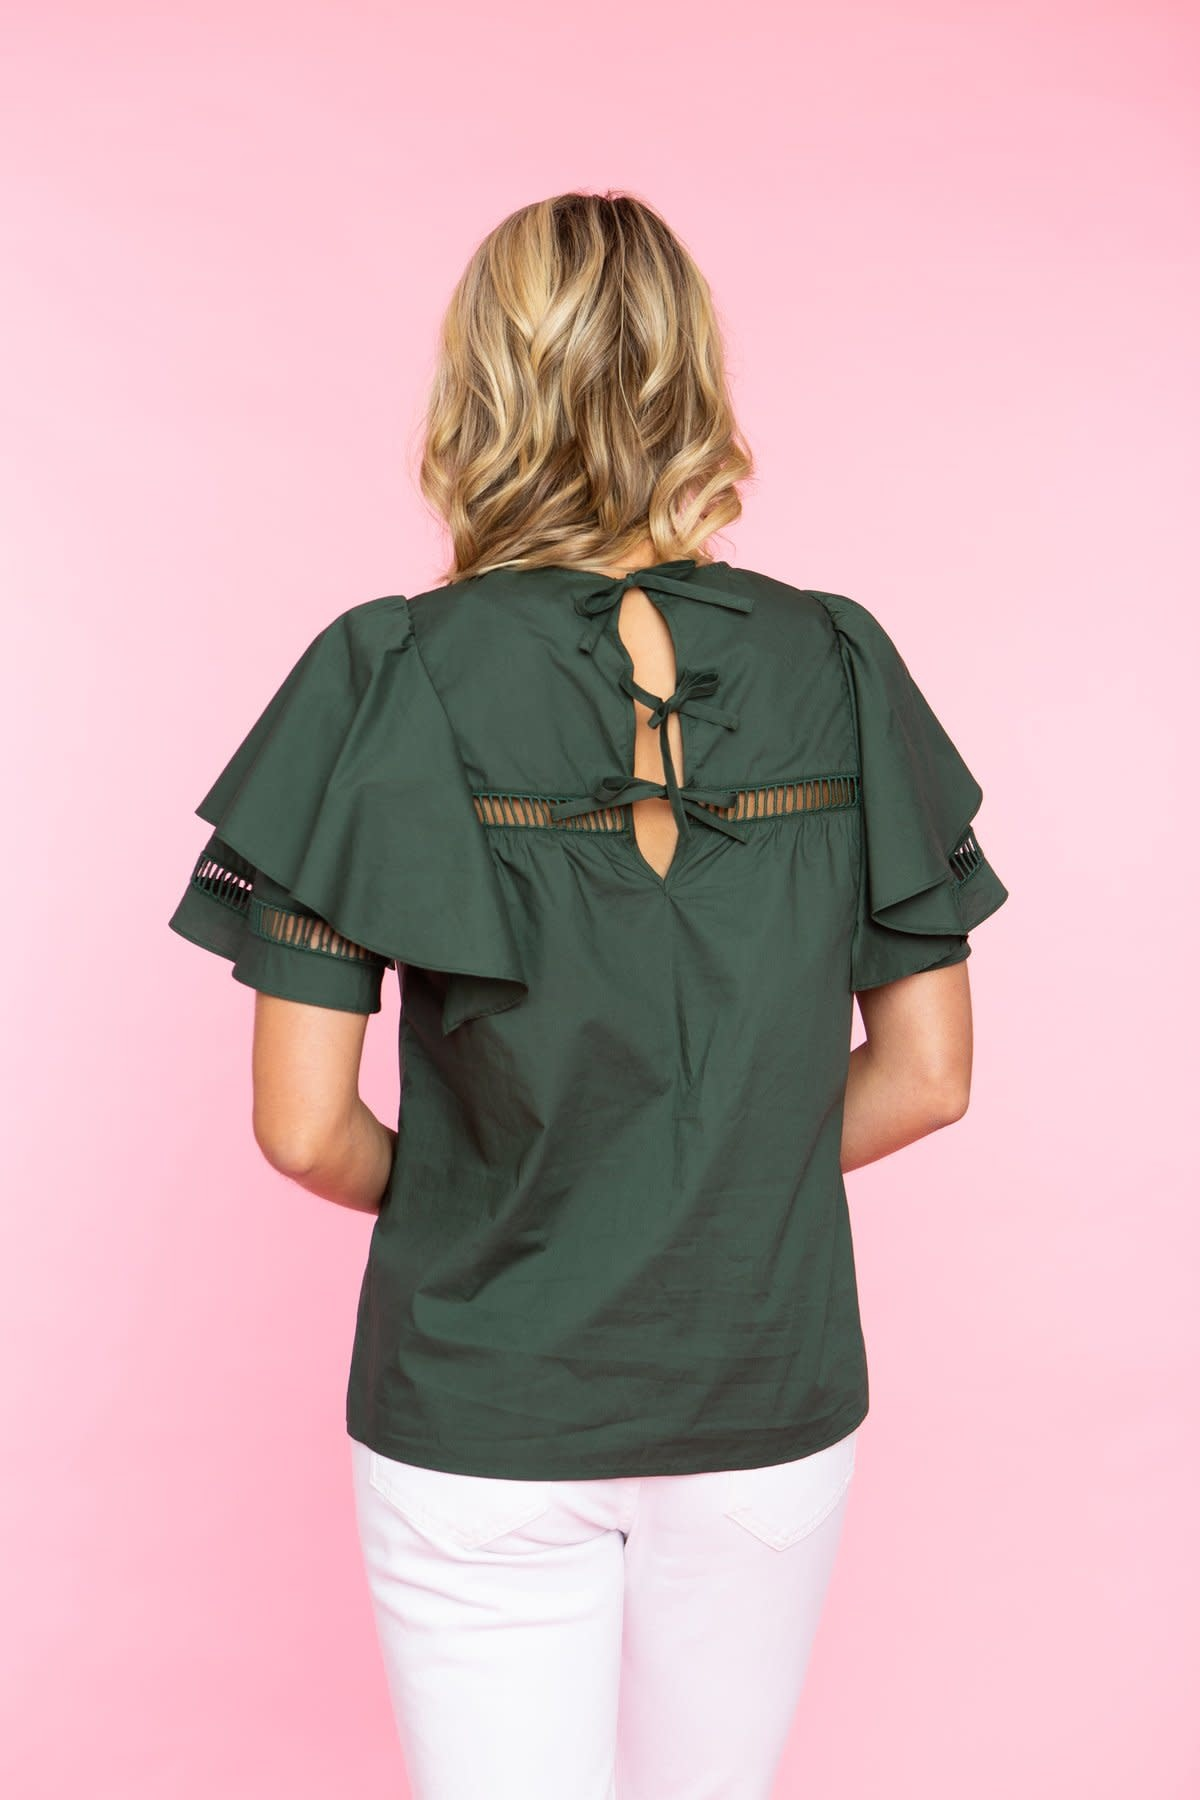 Crosby By Mollie Burch Evans Top Rainforest